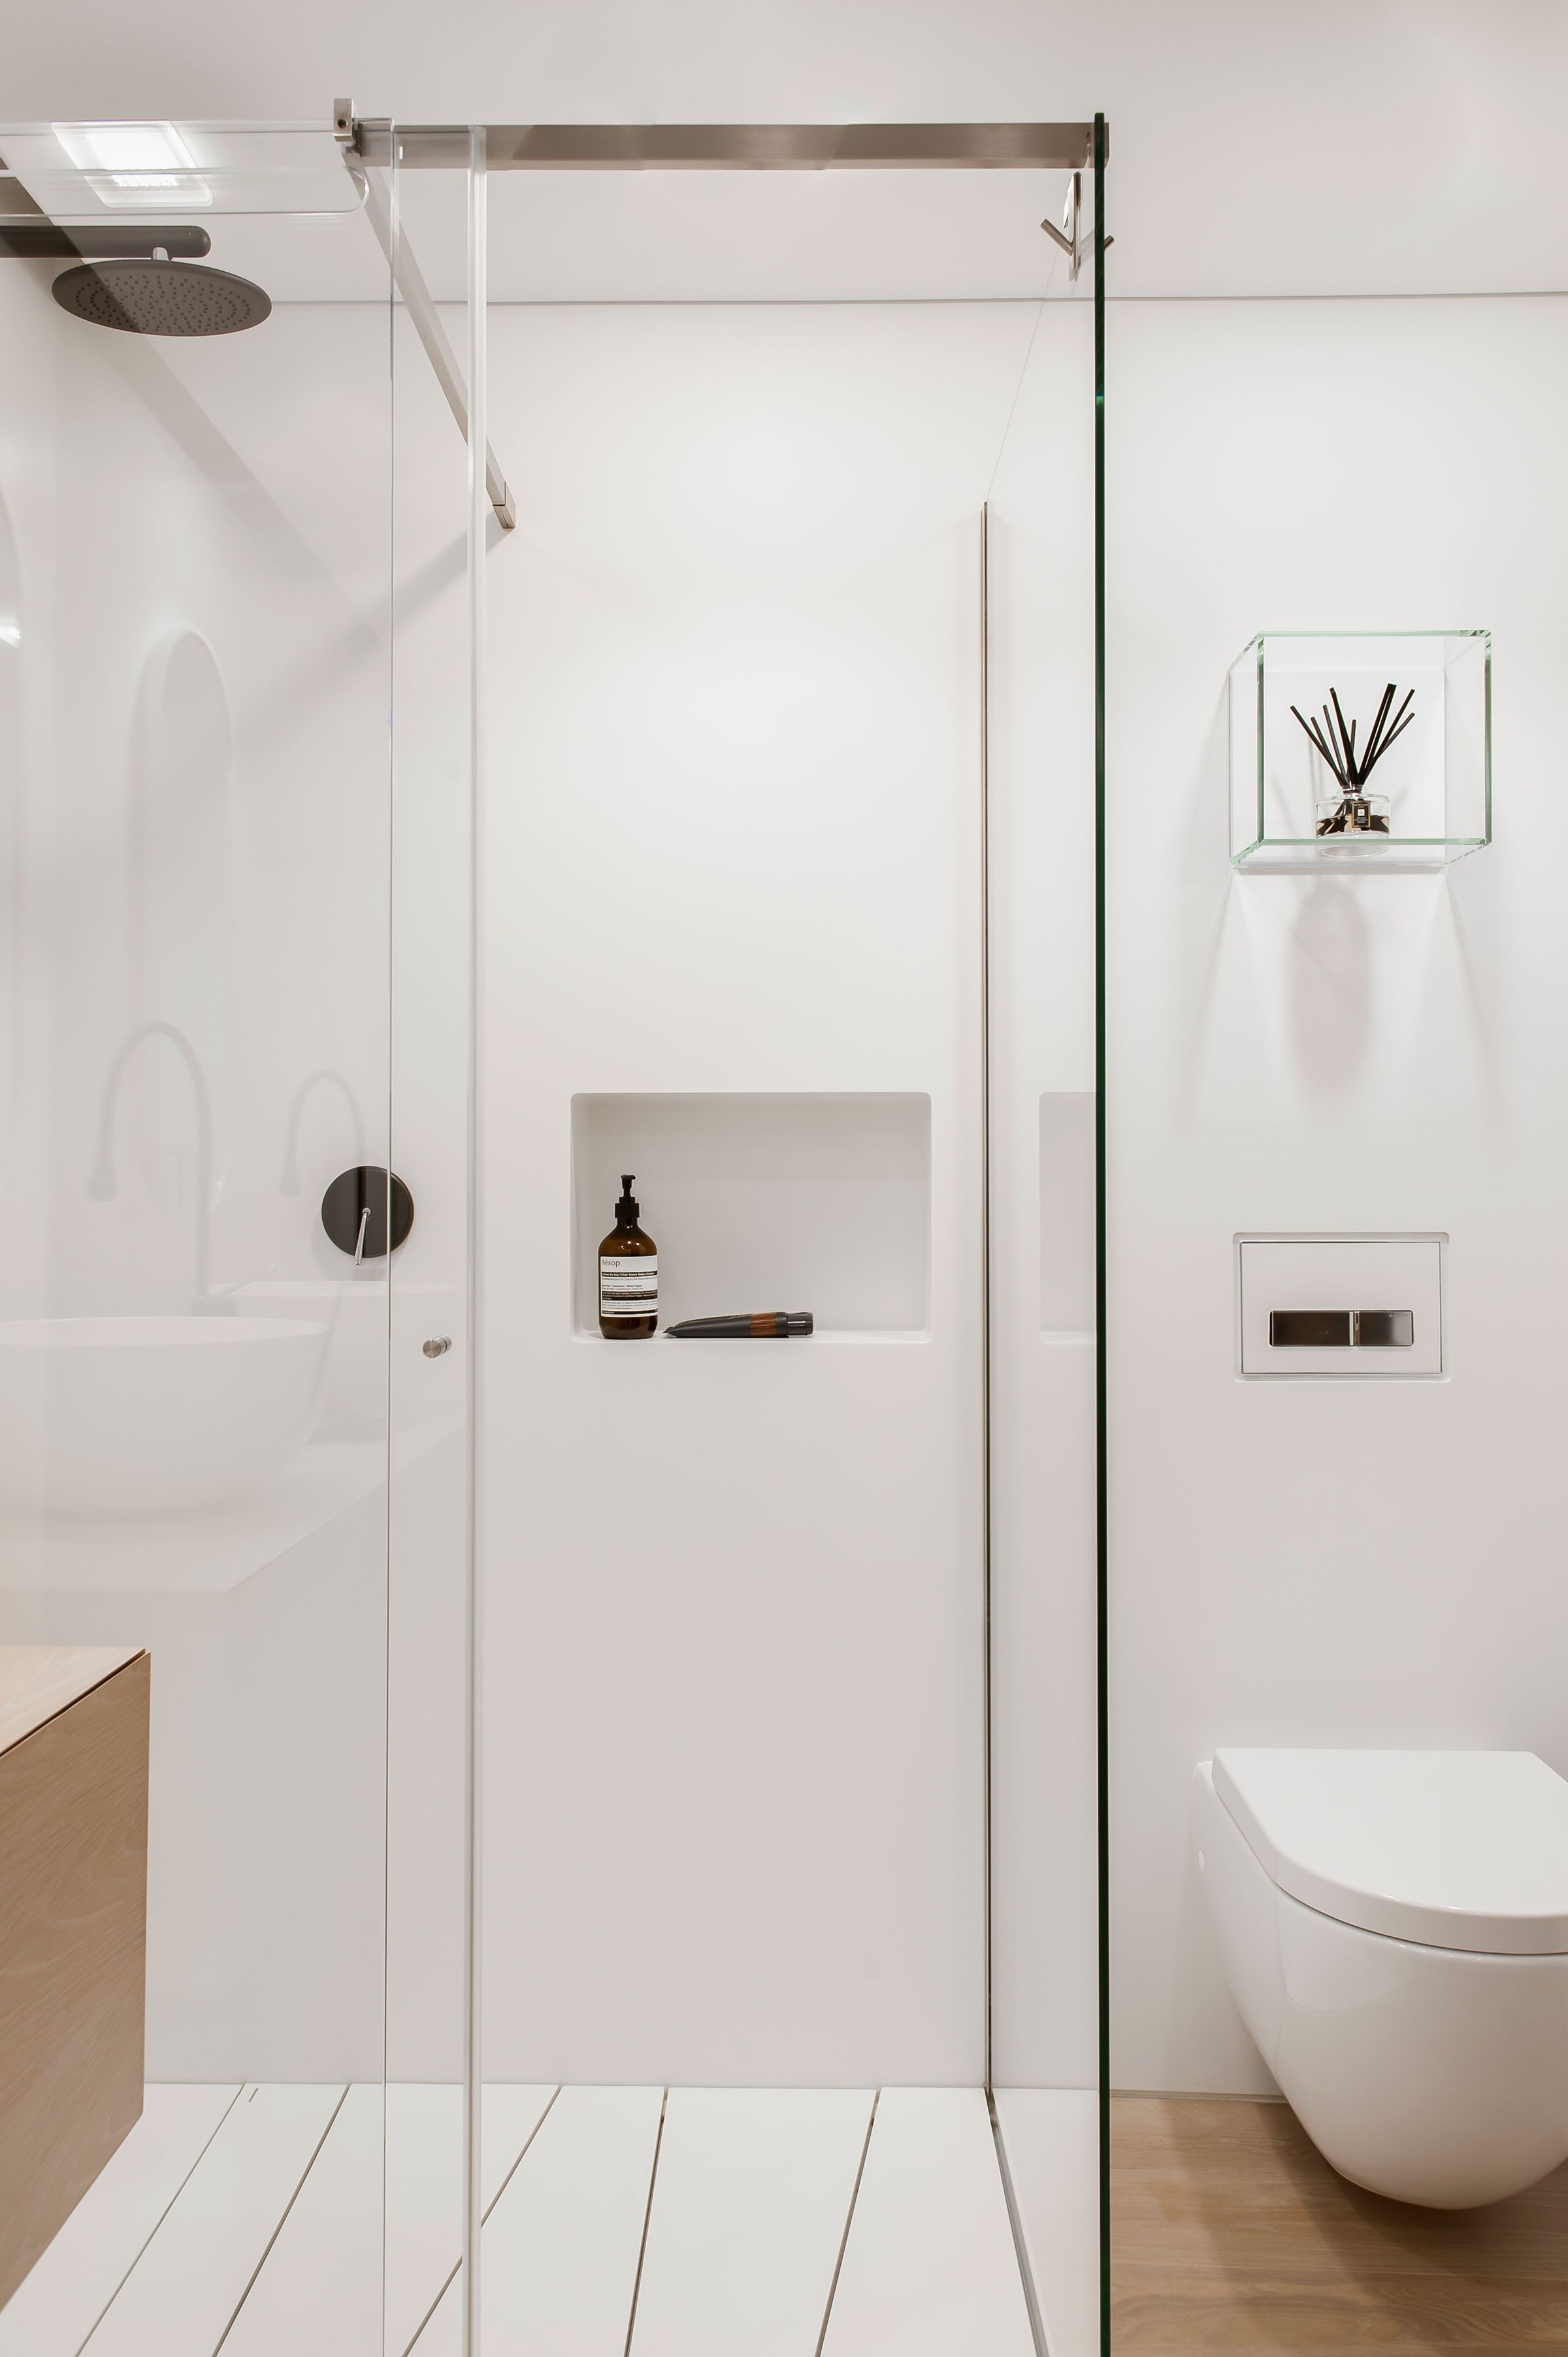 Clean, Simple Lines by Minosa Design (10)